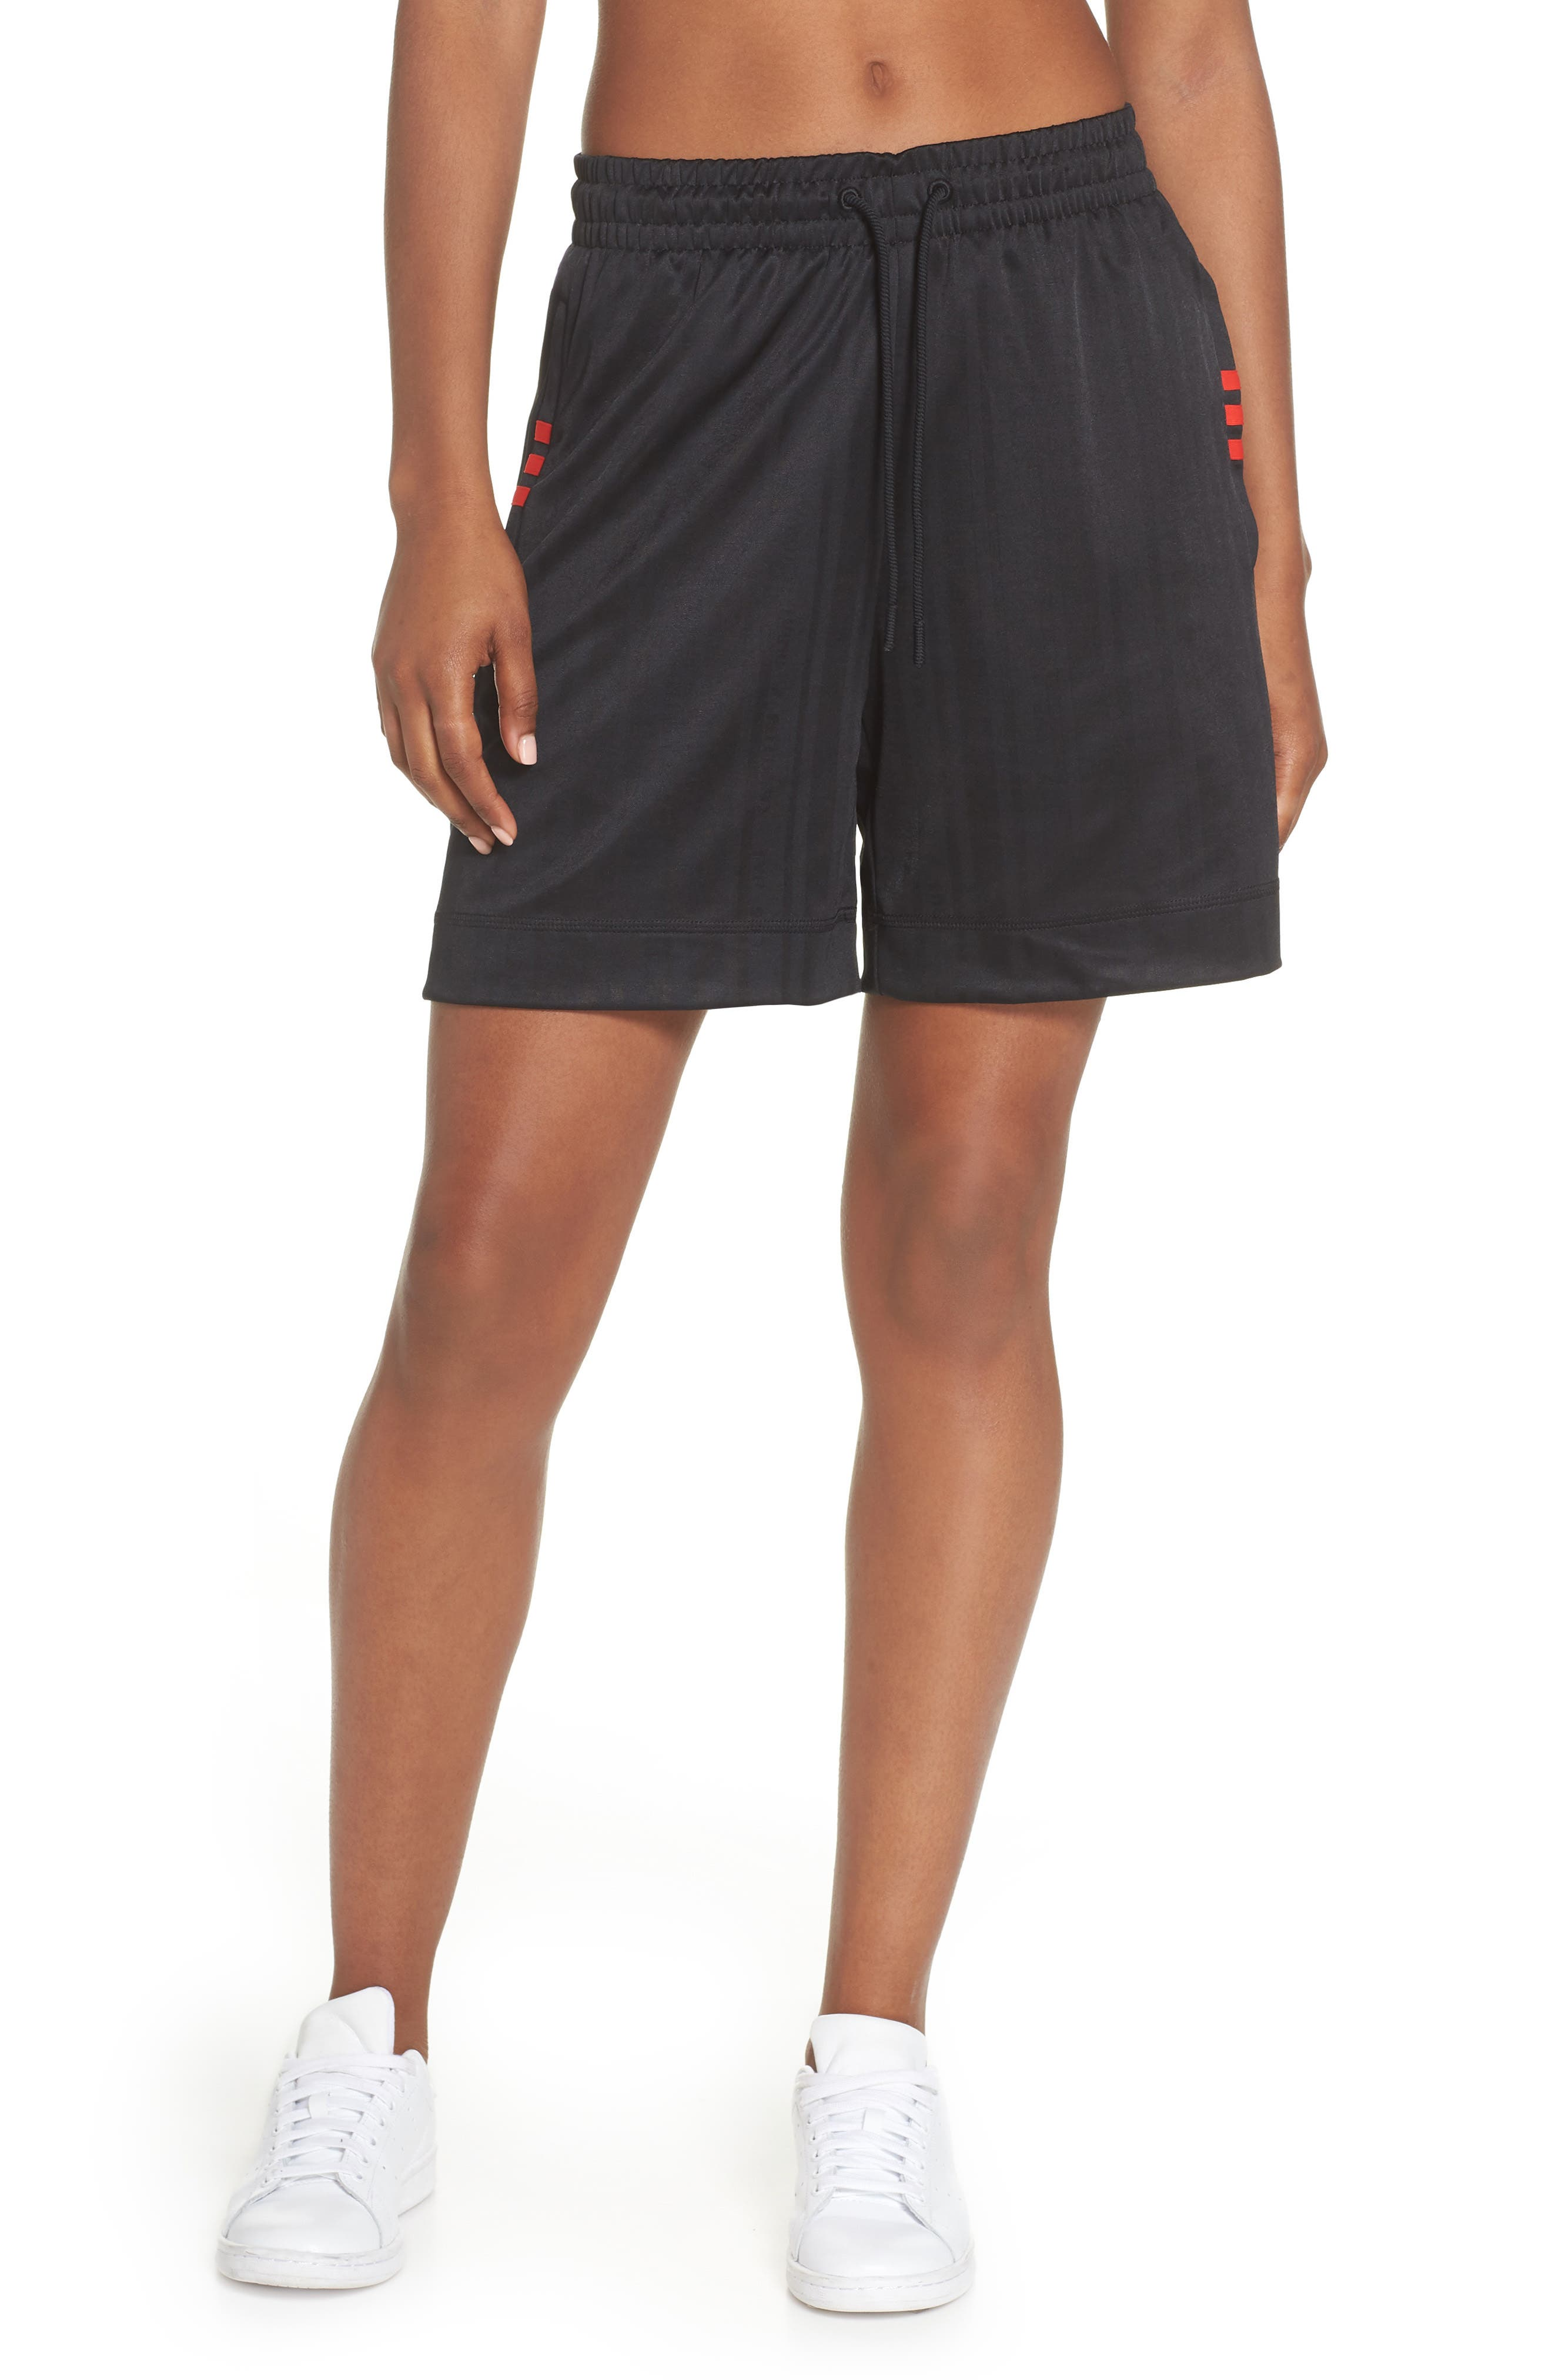 Soccer Shorts,                         Main,                         color, BLACK/ CORE RED